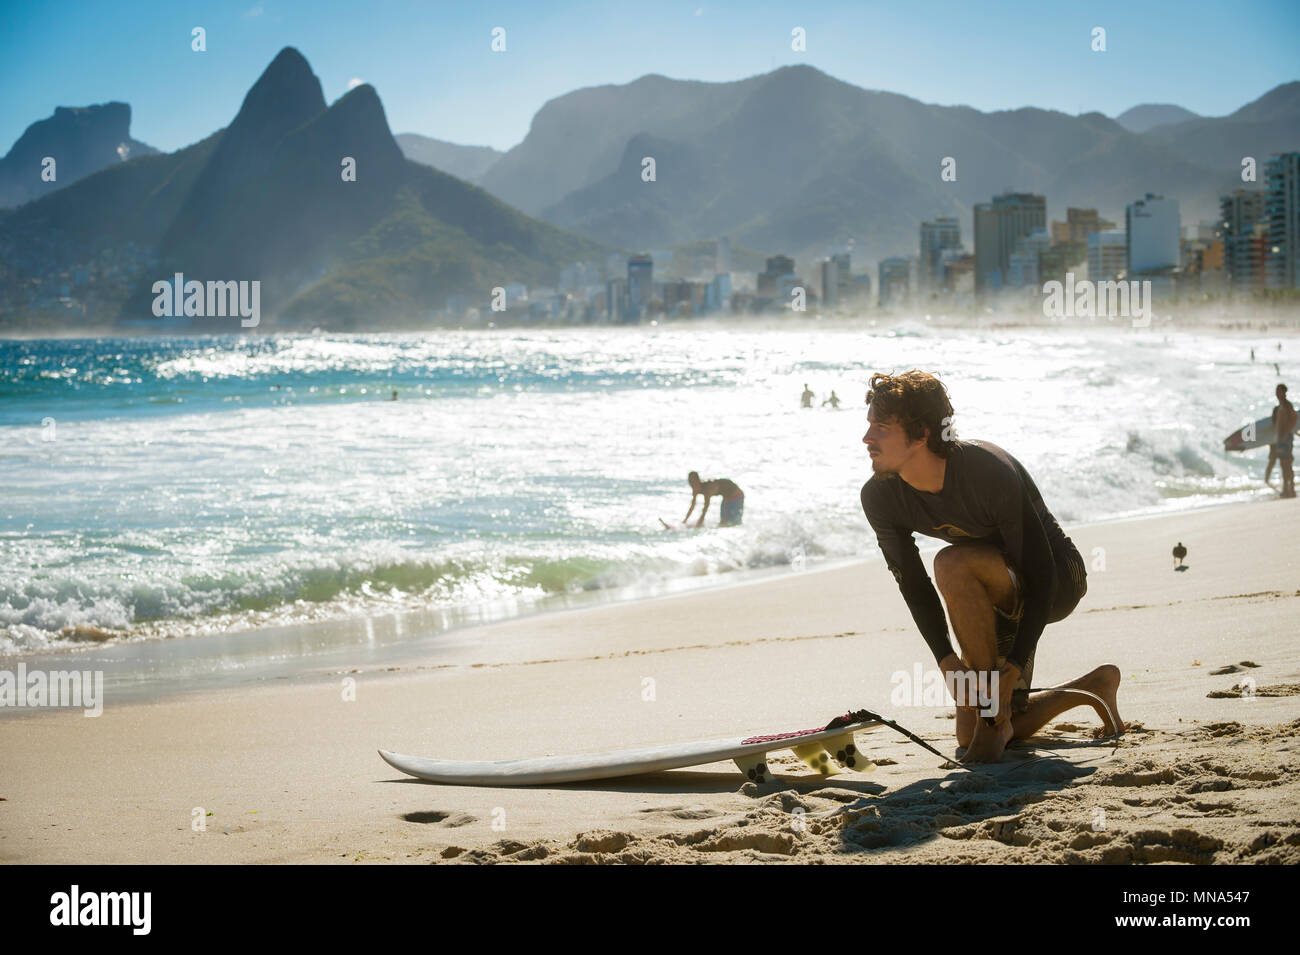 RIO DE JANEIRO - MARCH 20, 2017: Surfer on the beach before heading into the waves at the surf break at Arpoador. - Stock Image